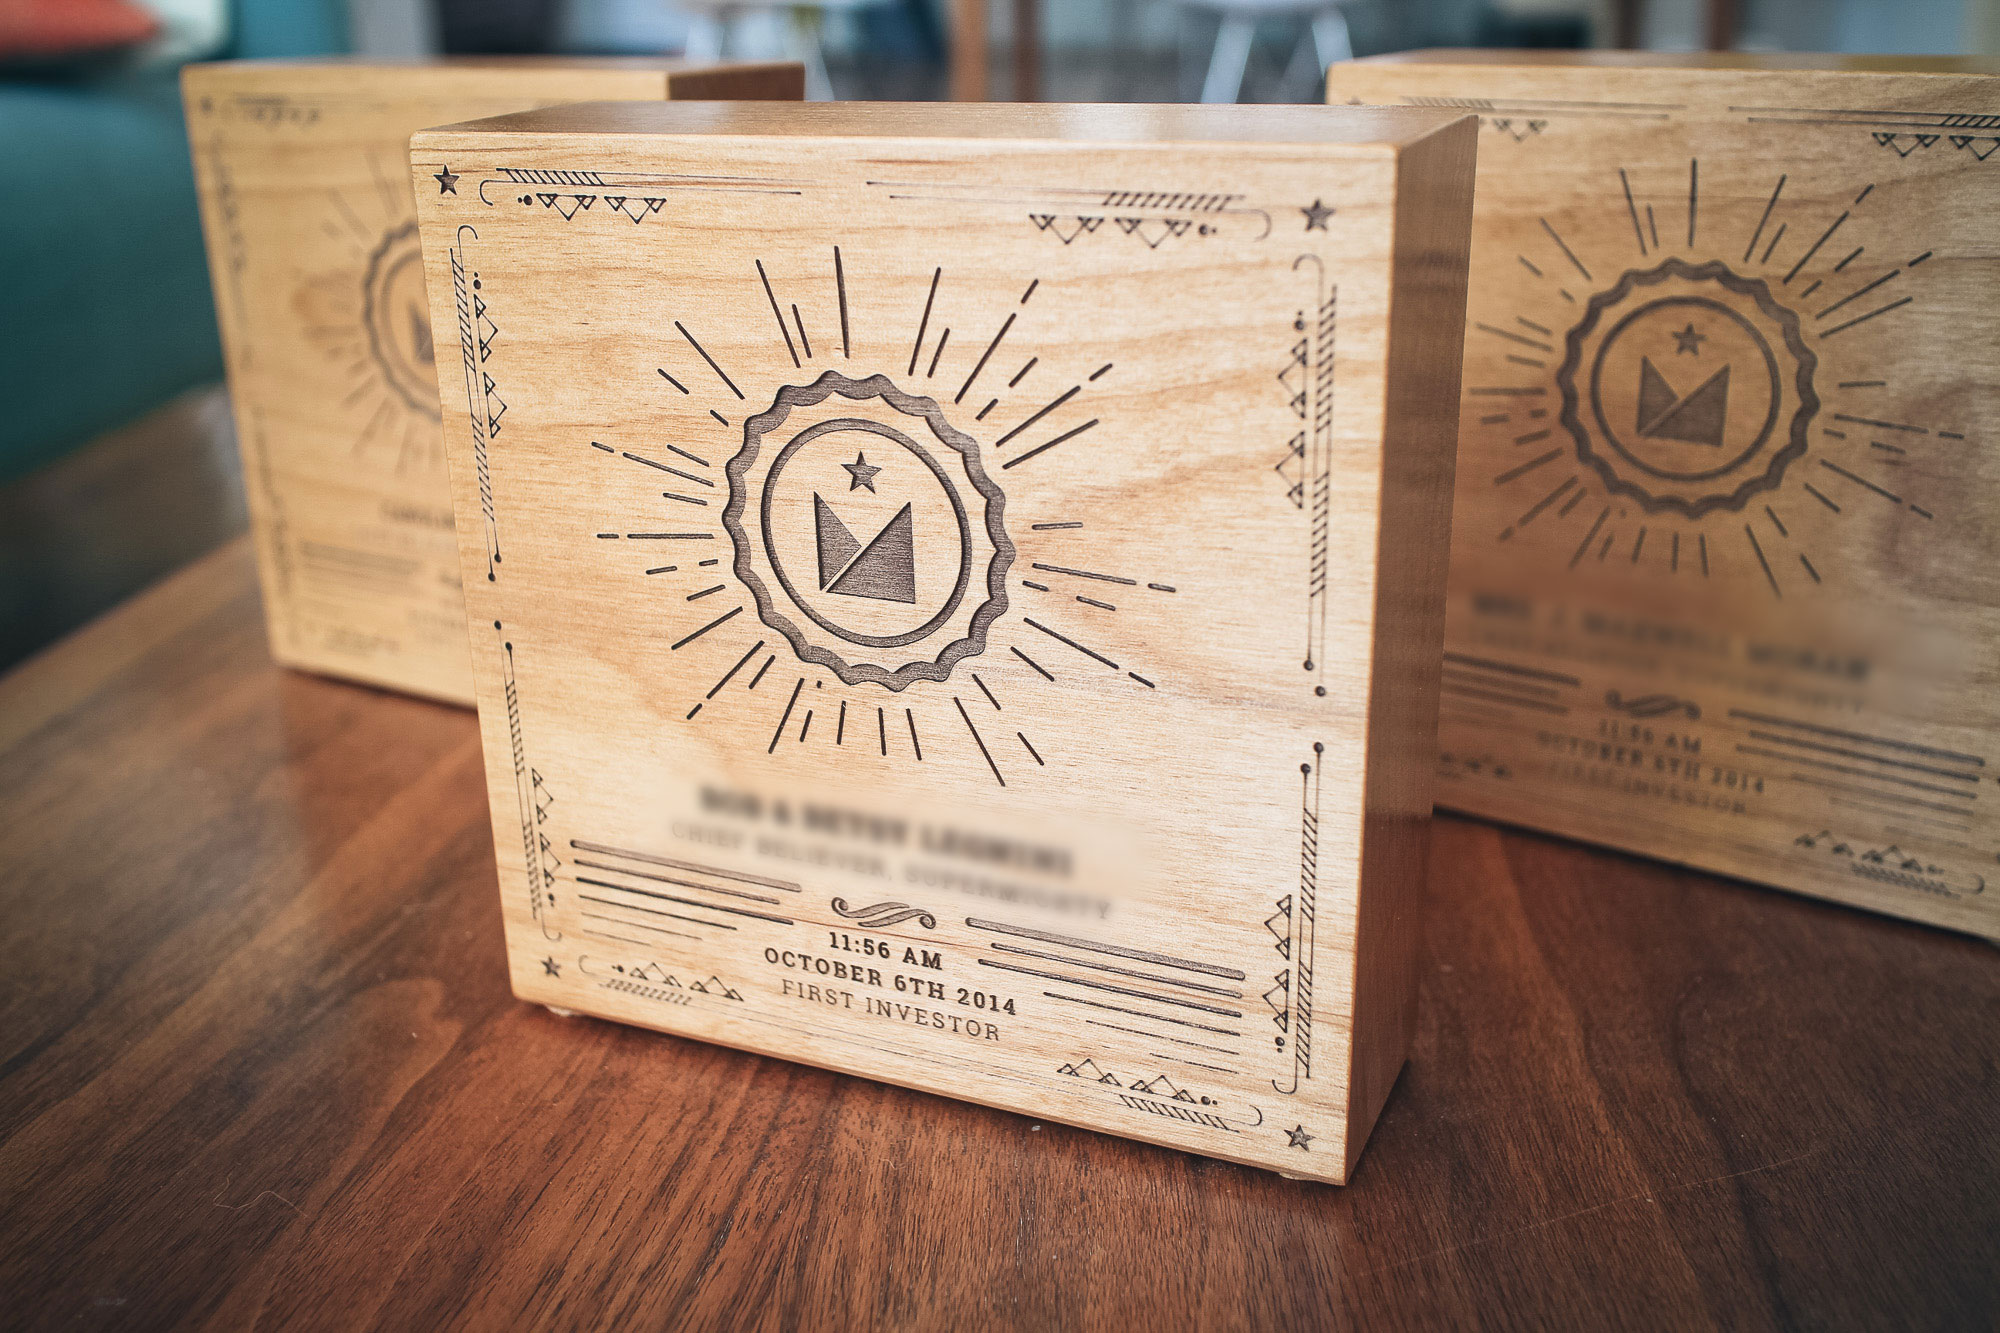 supermighty etched wood award